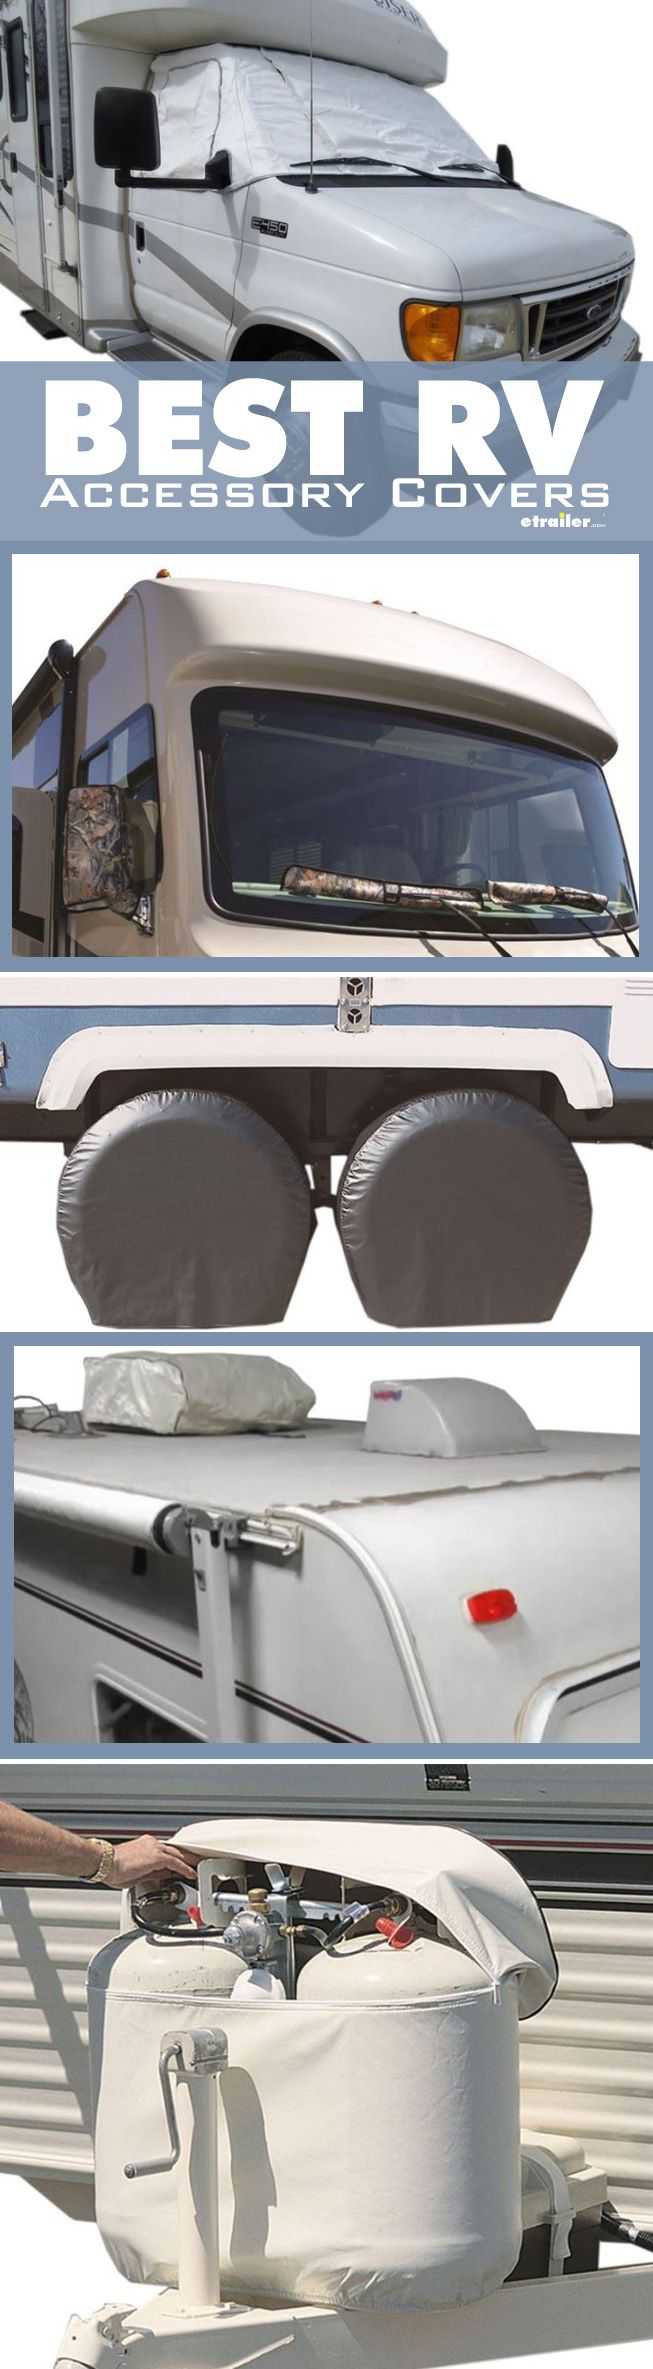 In addition to covering your camper while in storage, there are a number of covers available for other purposes and parts of your camper, such as the windshield, mirrors, wiper blades, tires, air conditioner, and propane tanks. These accessory covers will help protect and prolong the life of your camper's components.